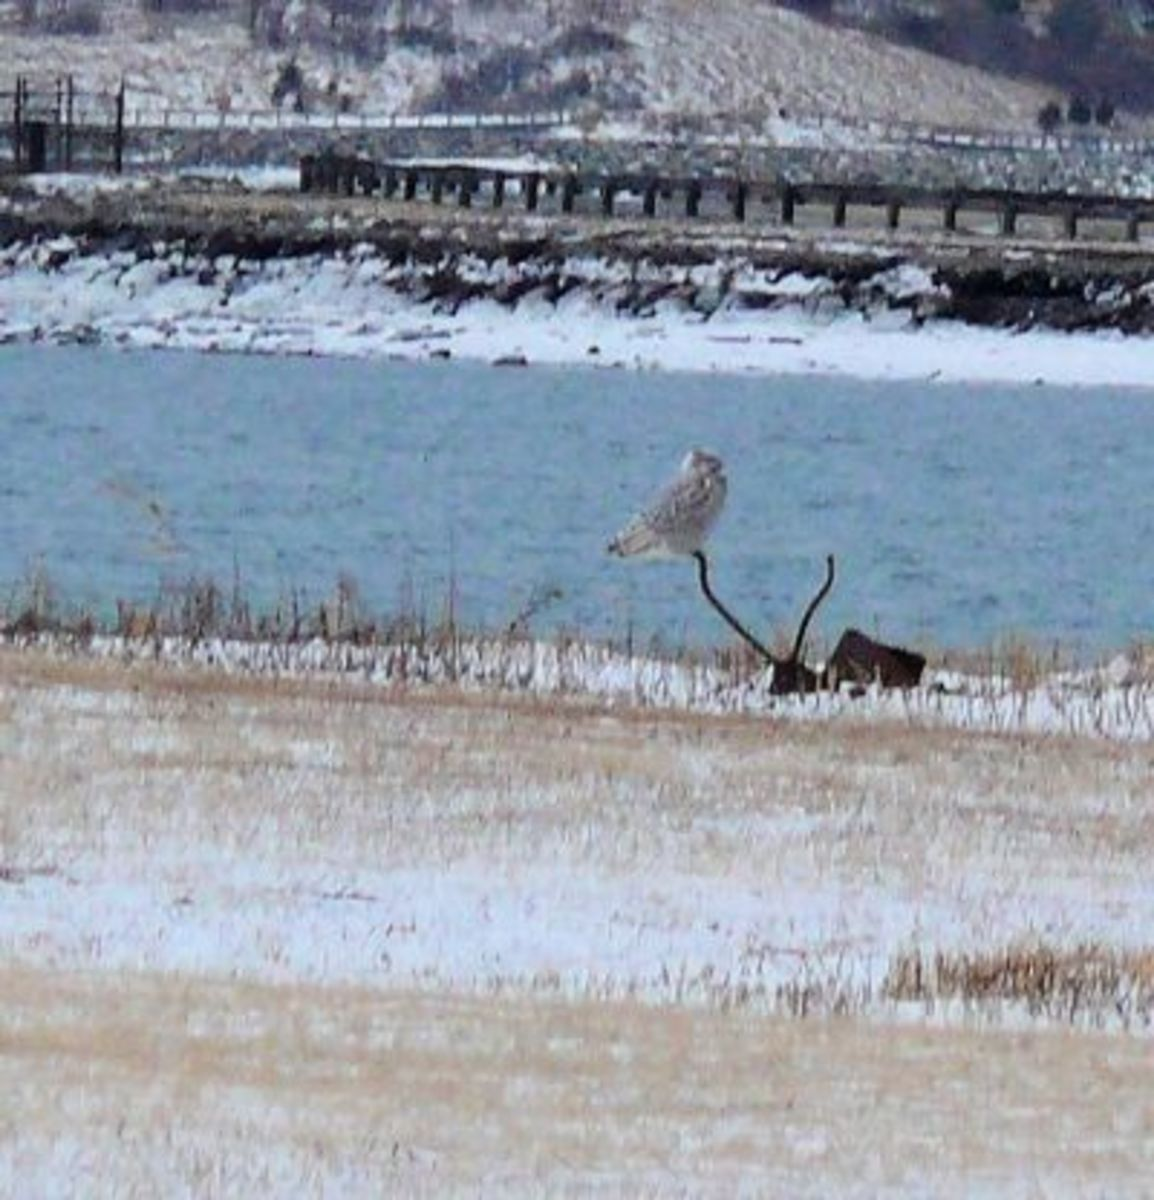 The perfect lookout to spot the next meal for this Snowy Owl